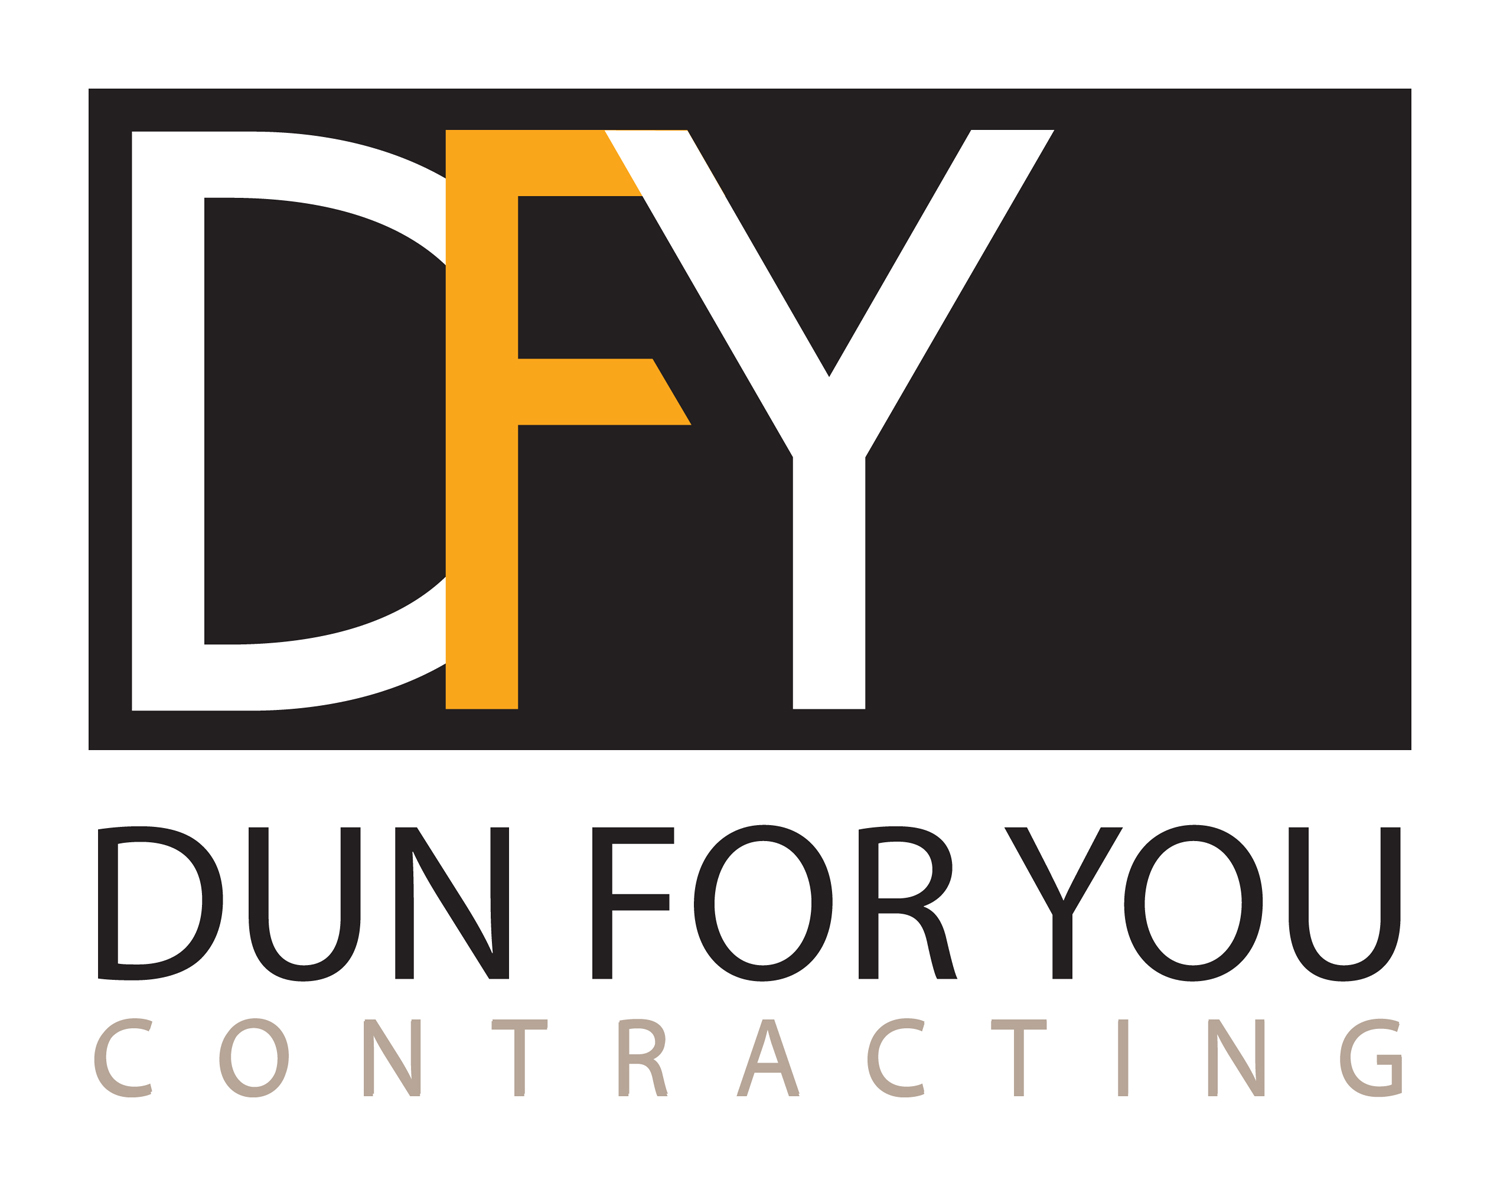 DUN For You Contracting